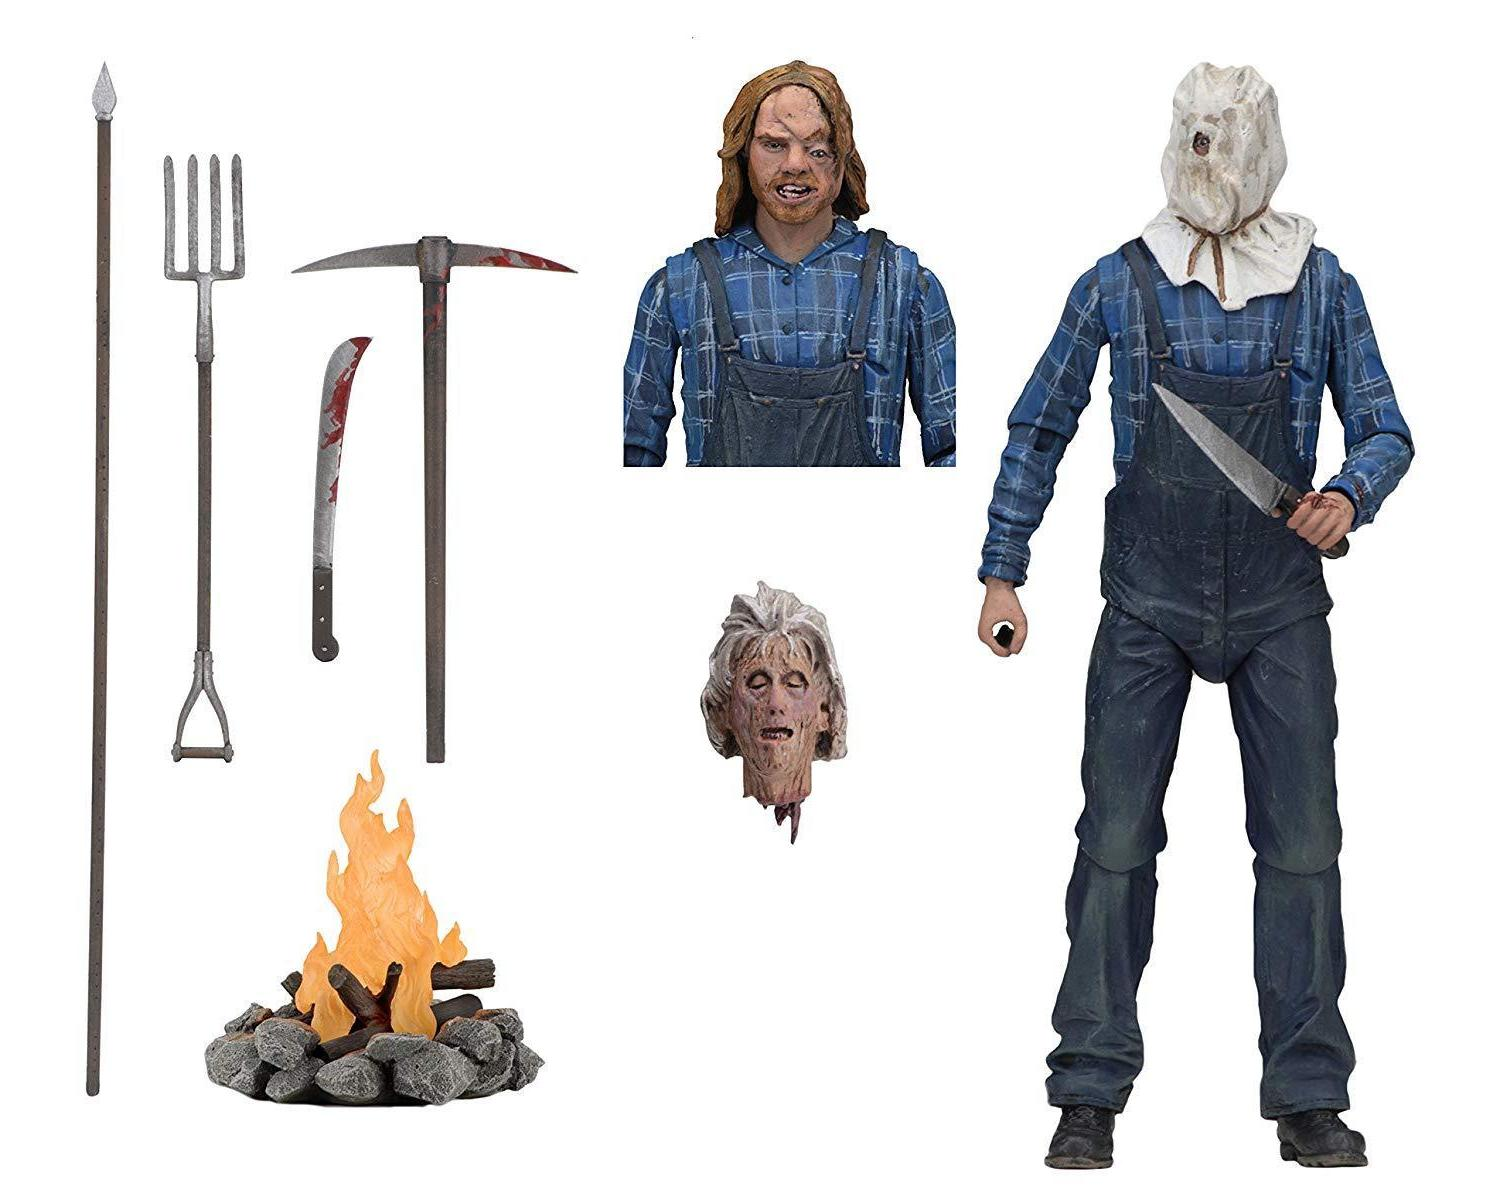 """NECA Friday the 13th Part 2 Ultimate Jason Voorhees 7""""action figure Seller"""